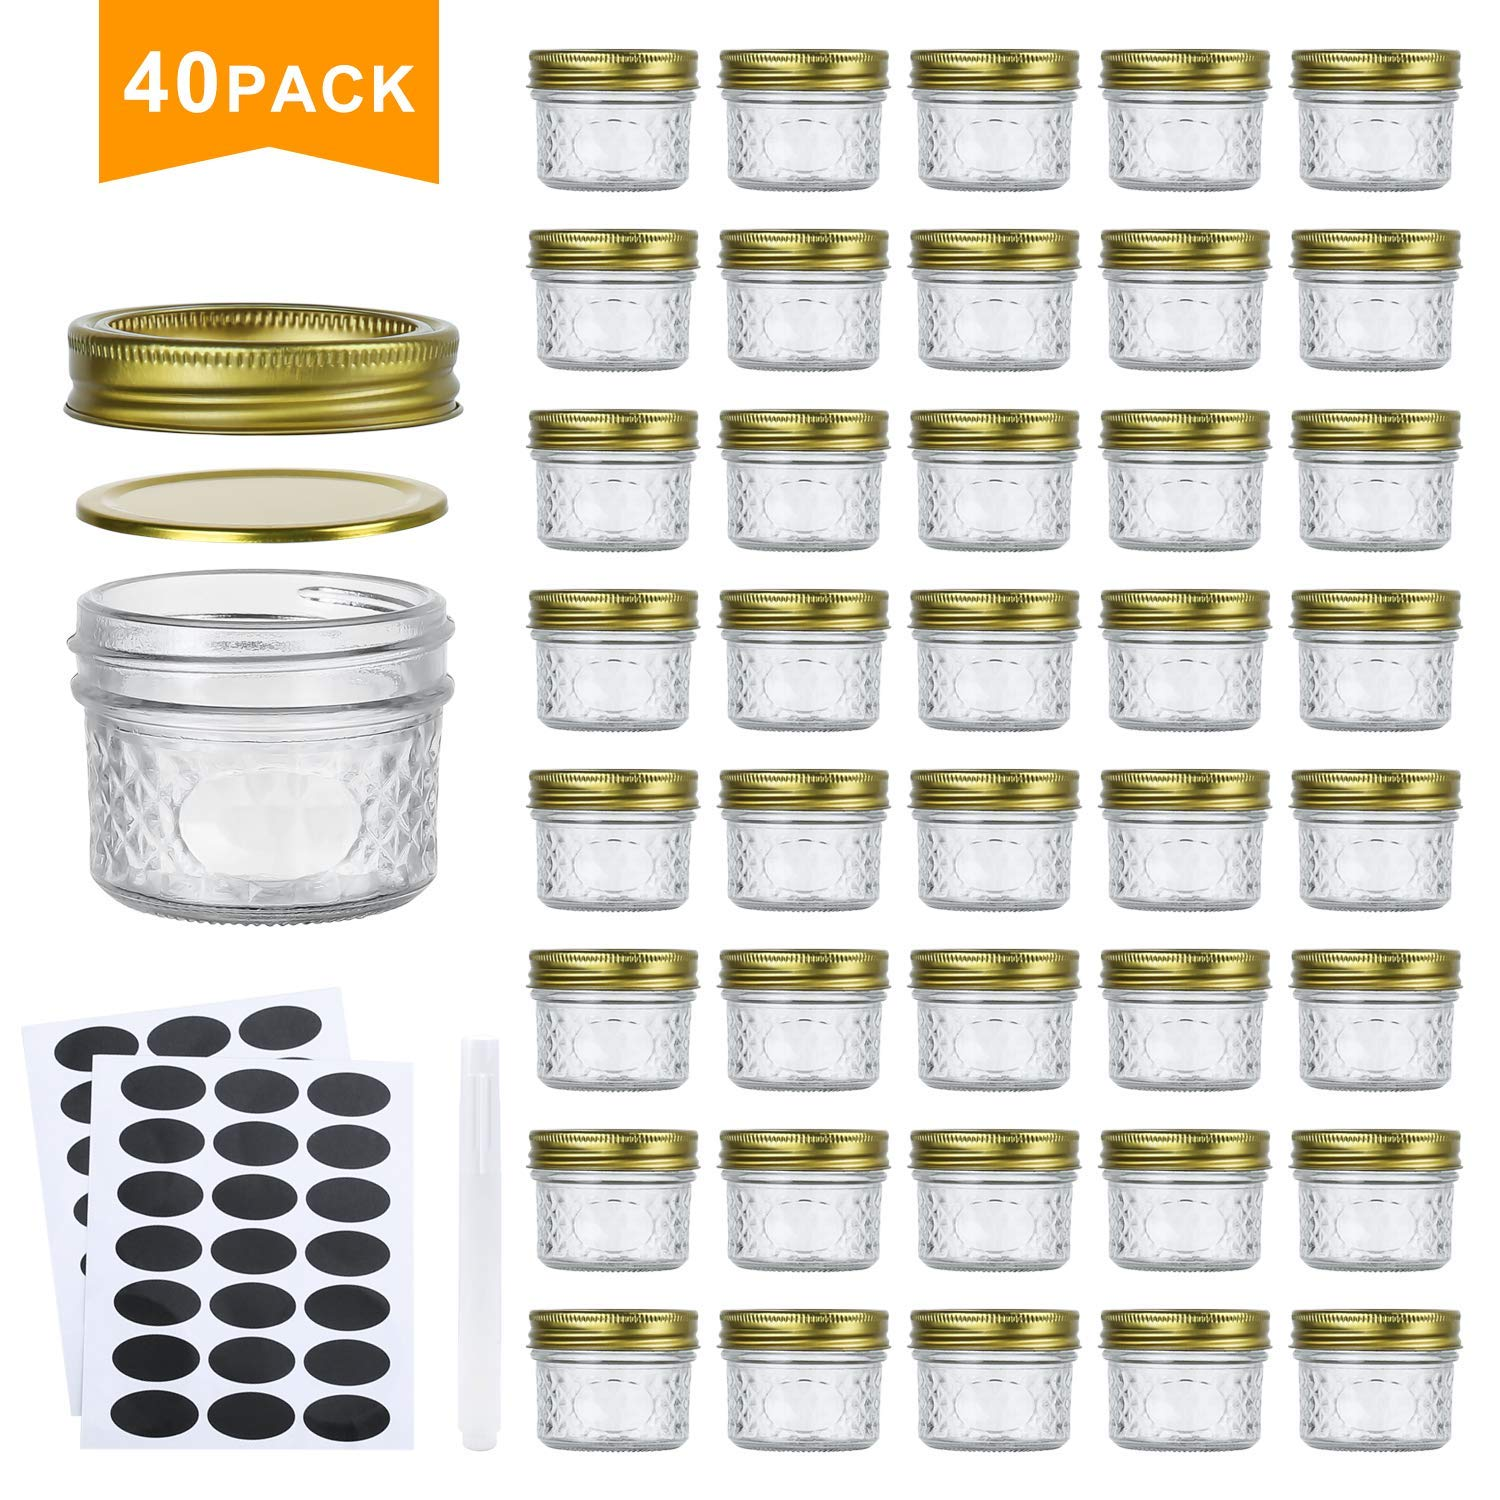 Encheng 4 oz Glass Jars With Lids And Bands,Small Canning Jars For Caviar,Herb,Jelly,Jams,Mini Wide Mouth Mason Jars For Kitchen Storage Preserving Food And Party Favors 40 Pack …